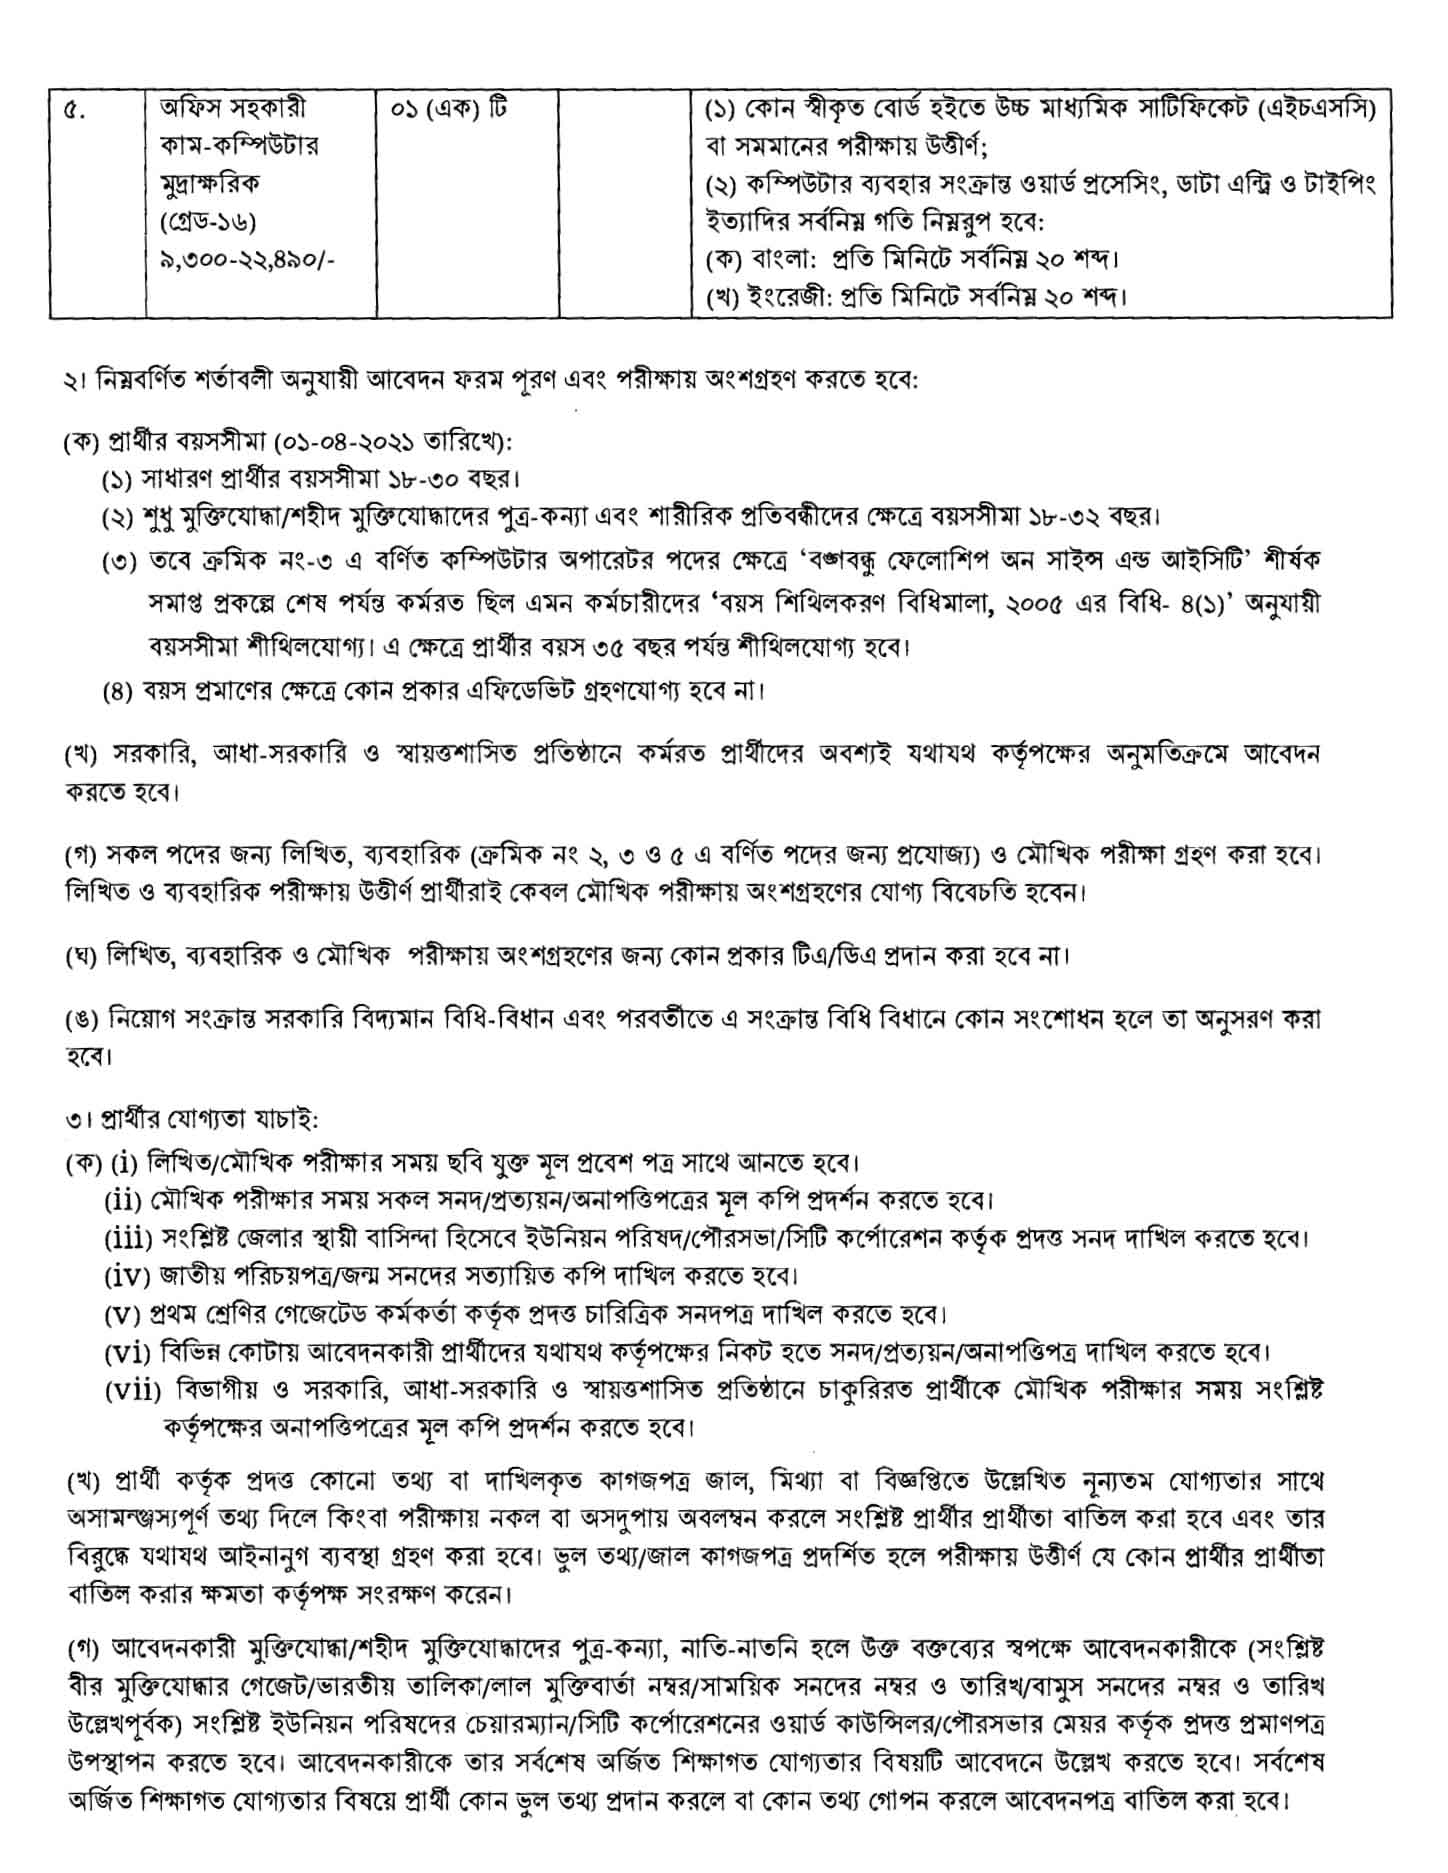 Ministry of Science and Technology Job Circular 2021